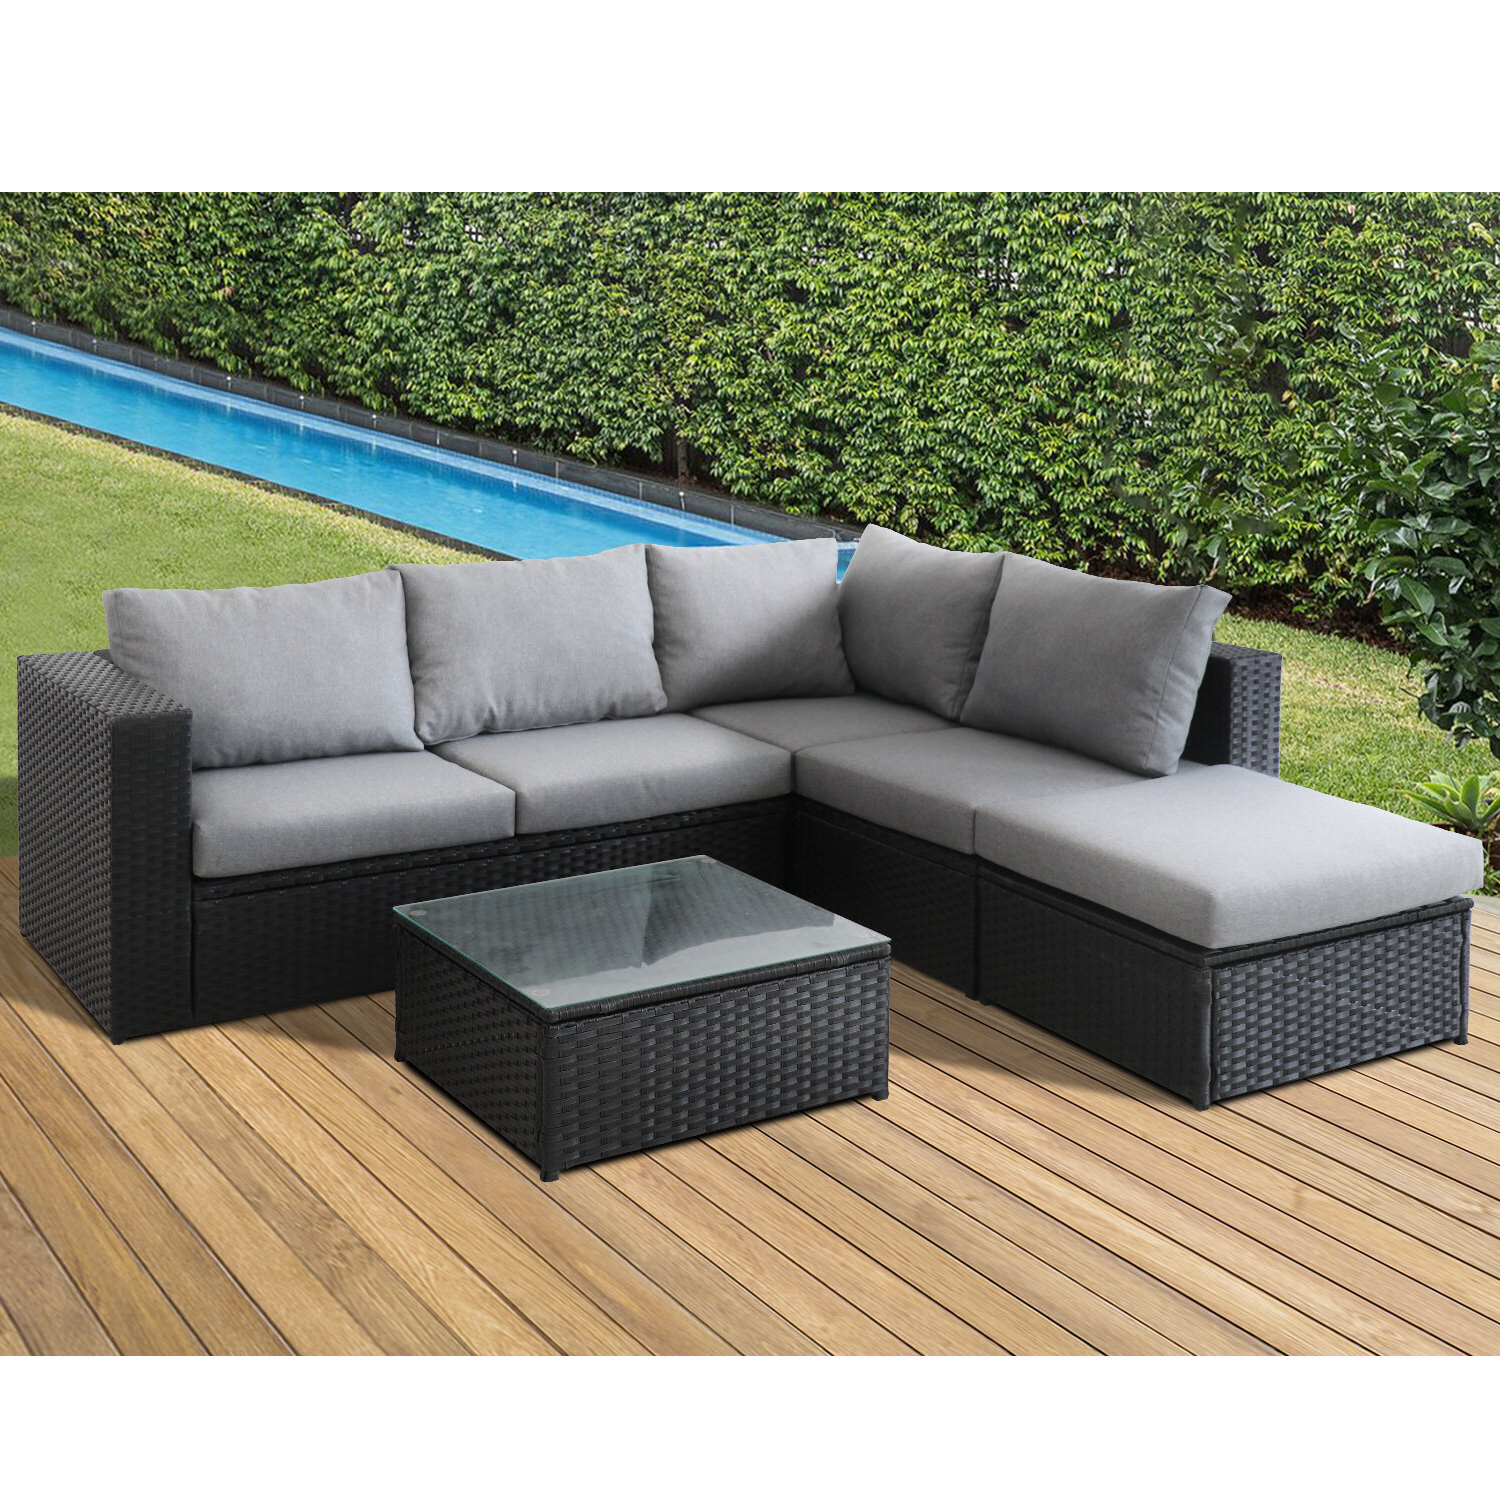 Bozman 4 Piece Sectional Seating Group With Cushions Regarding Famous Letona Patio Sectionals With Cushions (View 22 of 25)